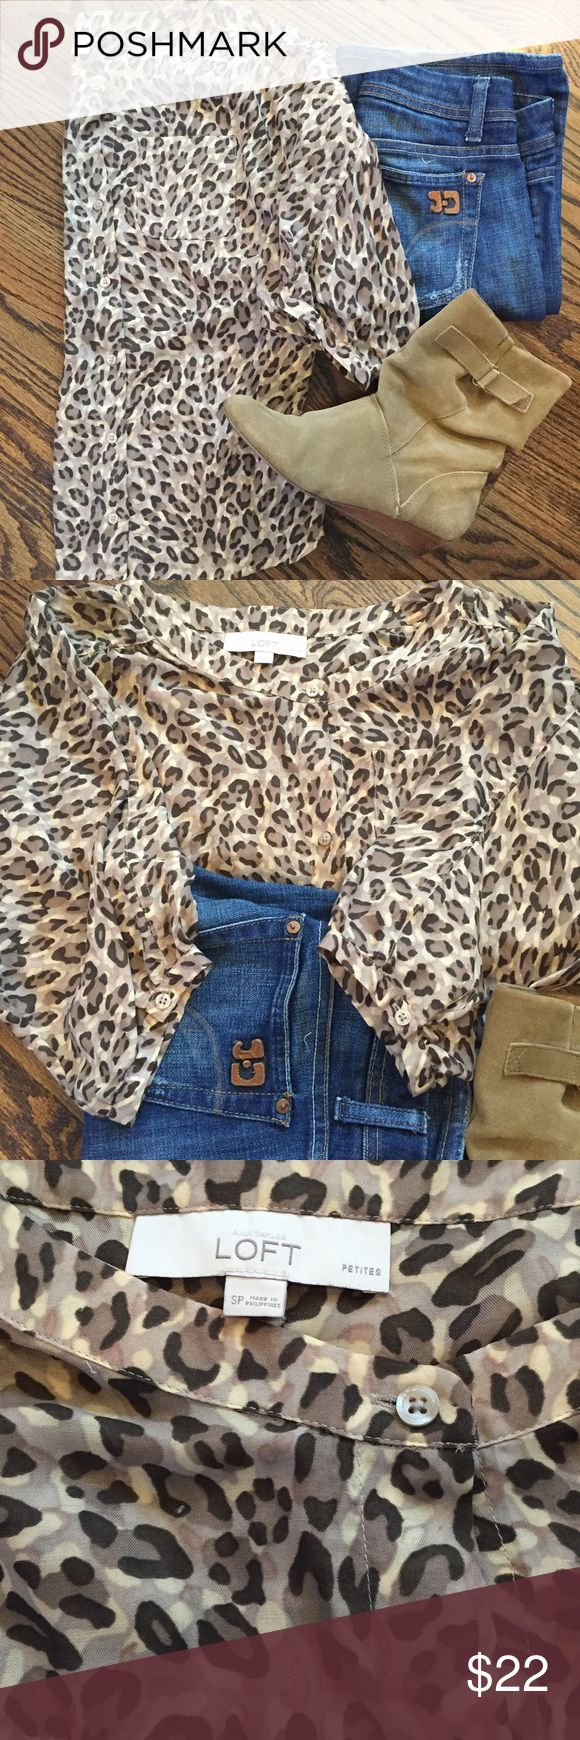 Animal print Ann Taylor Loft batwing top This animal print batwing top from Ann Taylor Loft takes the colors of fall and combines them with a fun & flirty animal print.  The top is semi-sheer with a boat neck and 3/4 sleeves.  In excellent used condition.  Size SP. LOFT Tops